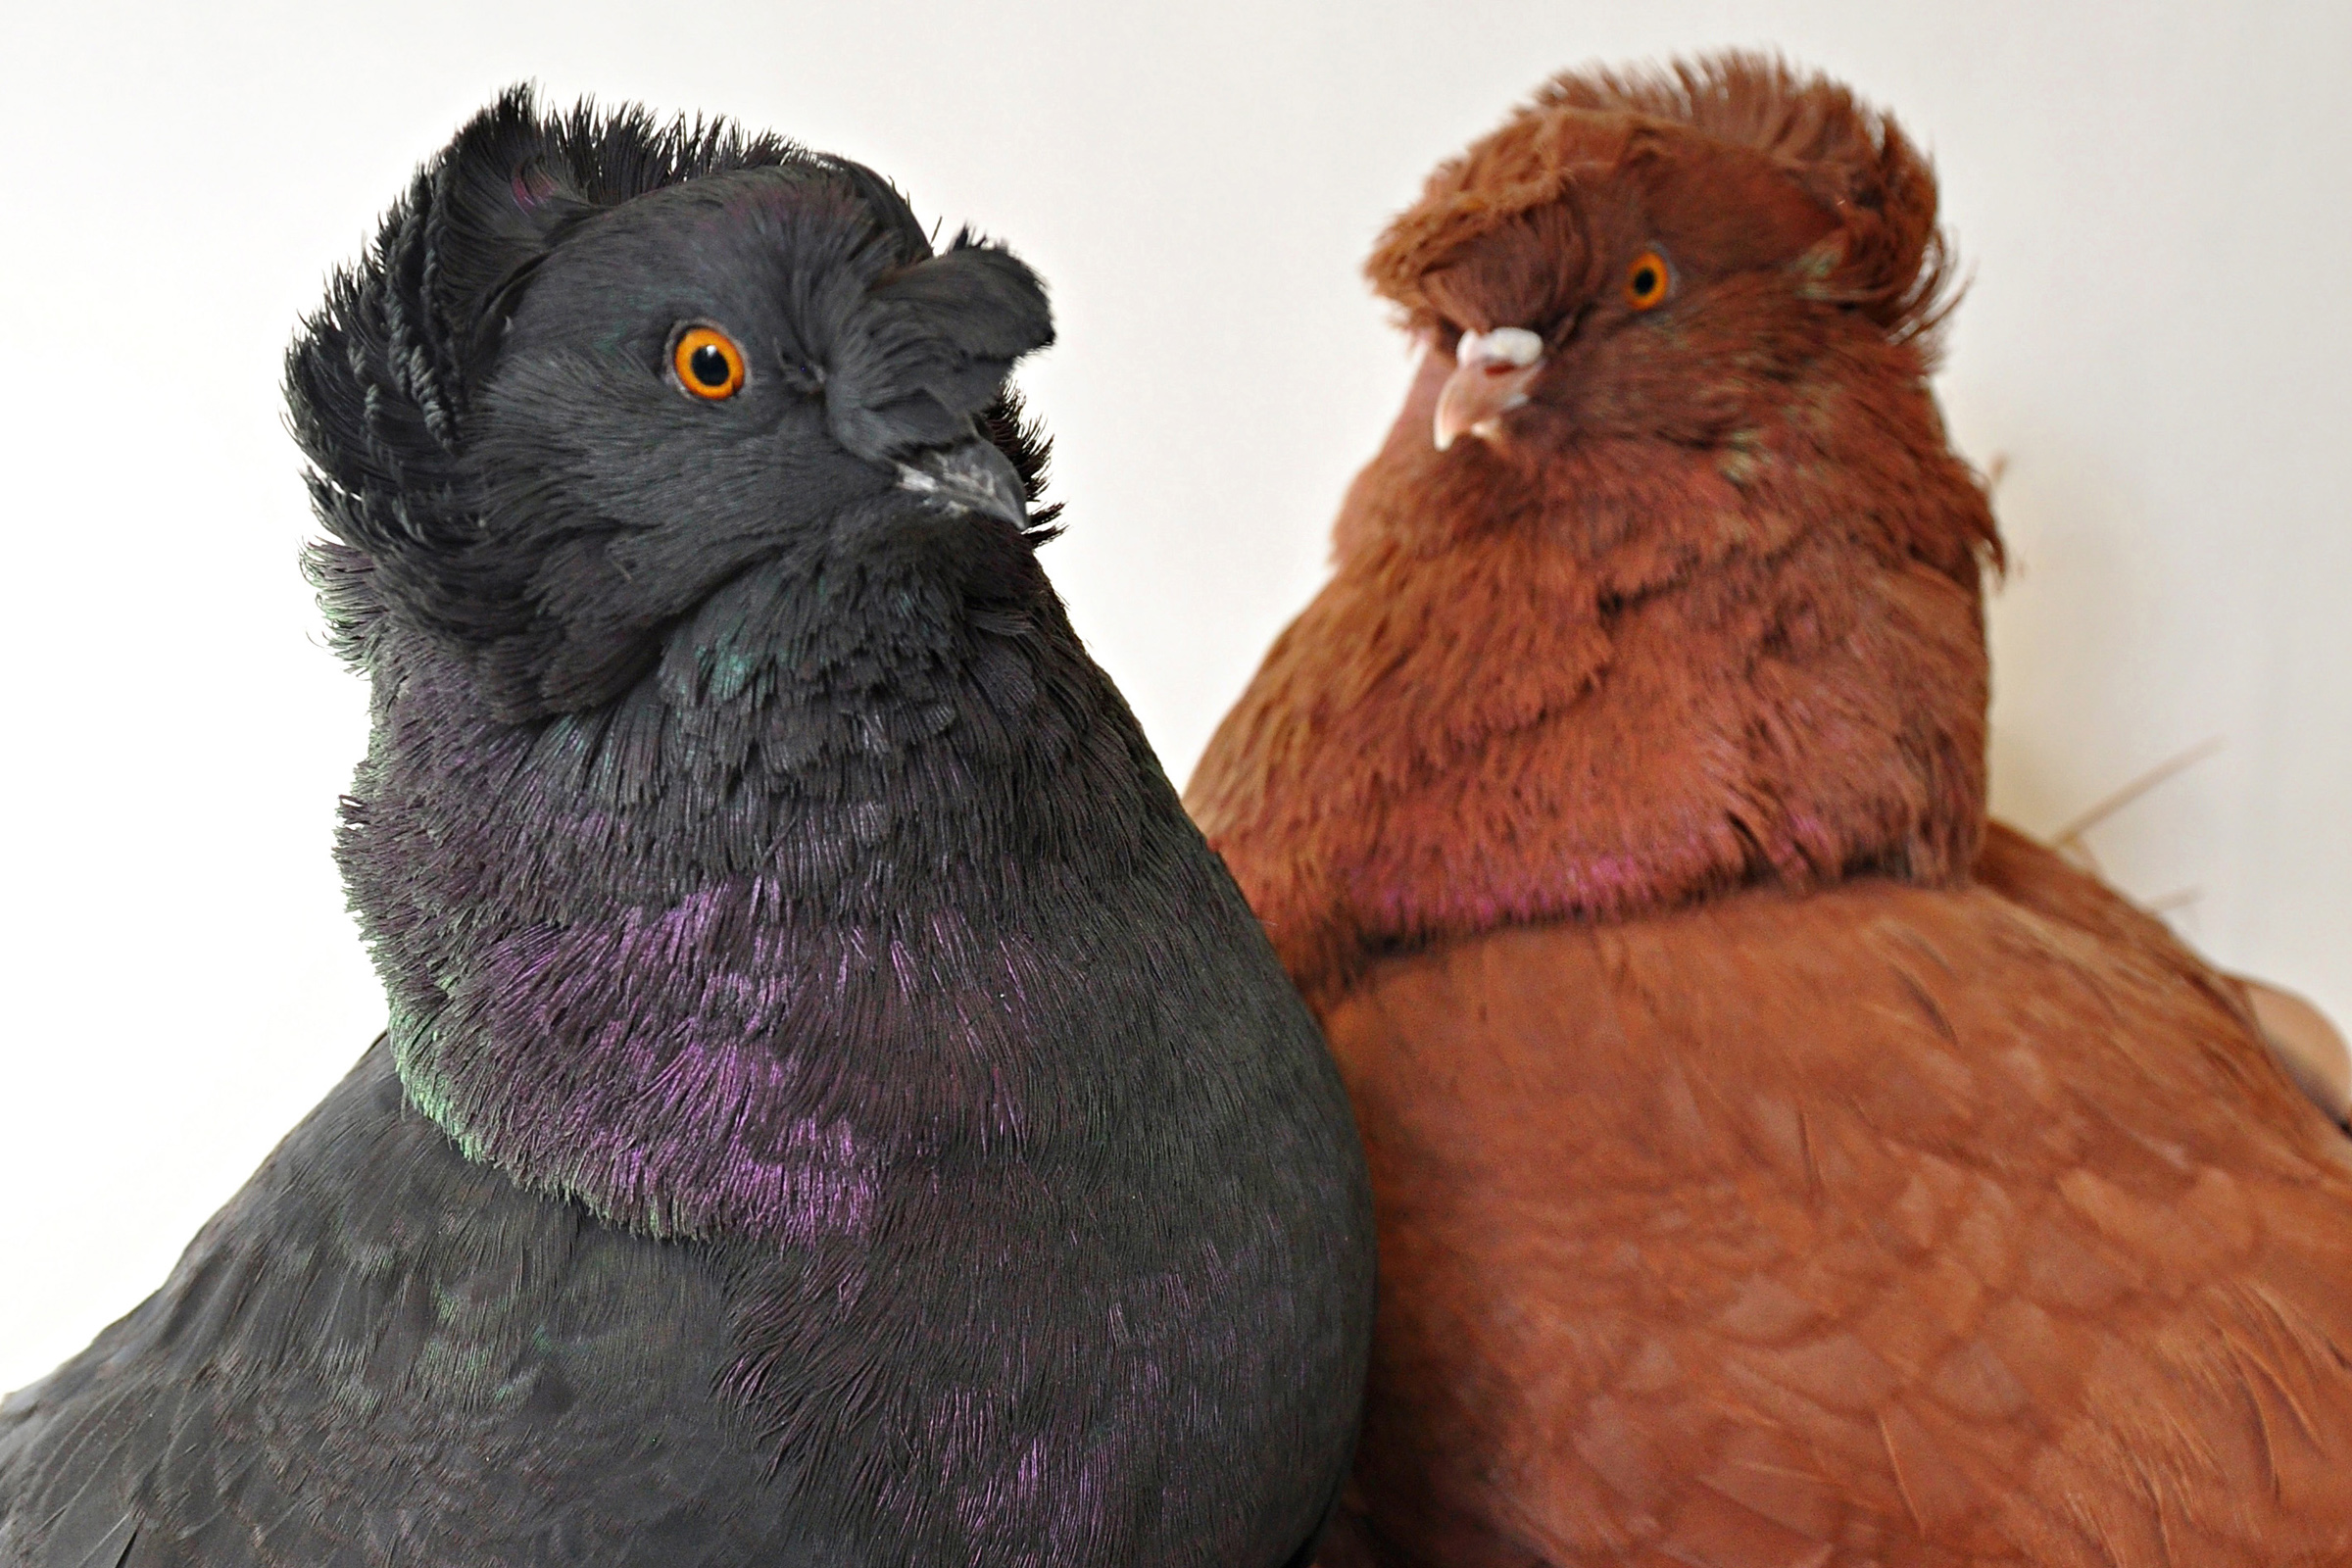 These English trumpeter pigeons – blue-black on the left and red on the right – display some of the great diversity of colors among some 350 breeds of rock pigeons. University of Utah biologists discovered three major genes explain color variations in rock pigeons. In the blue-black pigeon, none of the genes have mutations. The red bird is that color because it has a mutant version of a gene named Sox10. The same genes are involved in making some people susceptible to skin cancer and others develop albinism, or a lack of pigment.